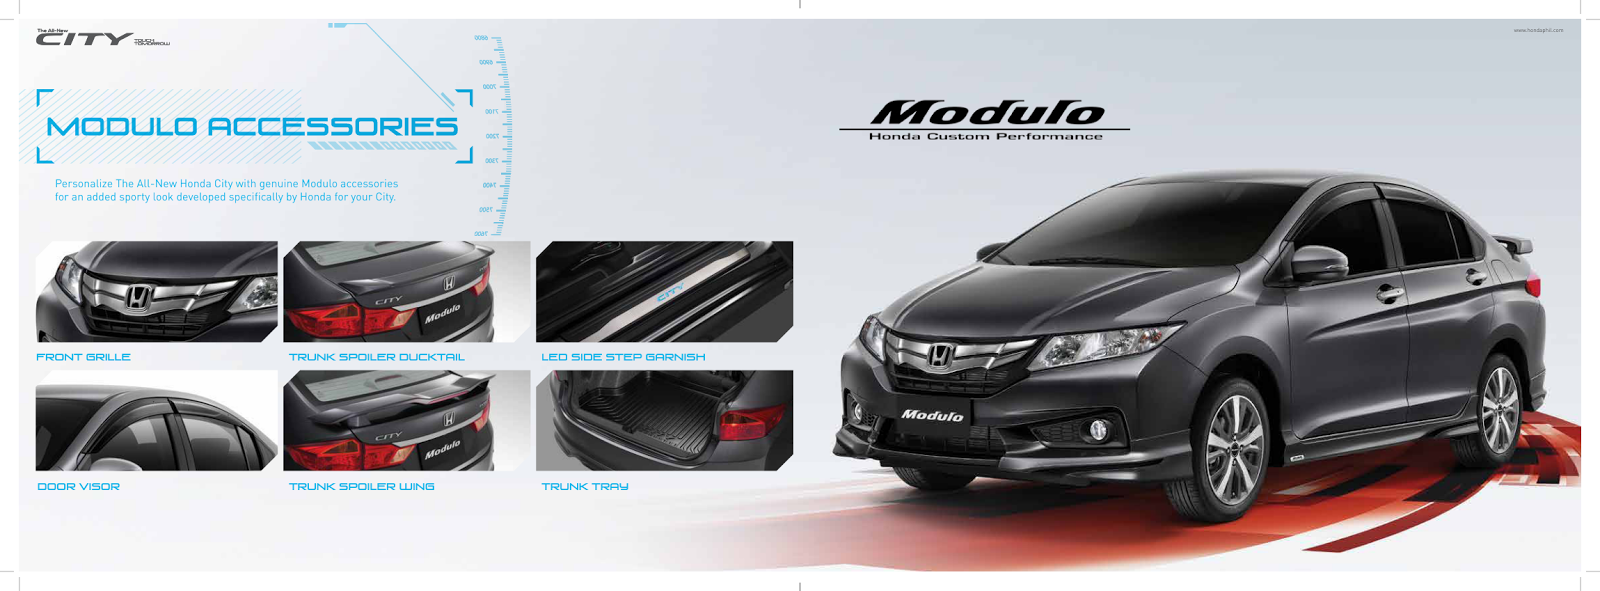 Honda cars philippines launches all new city and confirms brio for phl market w complete brochure carguide ph philippine car news car reviews